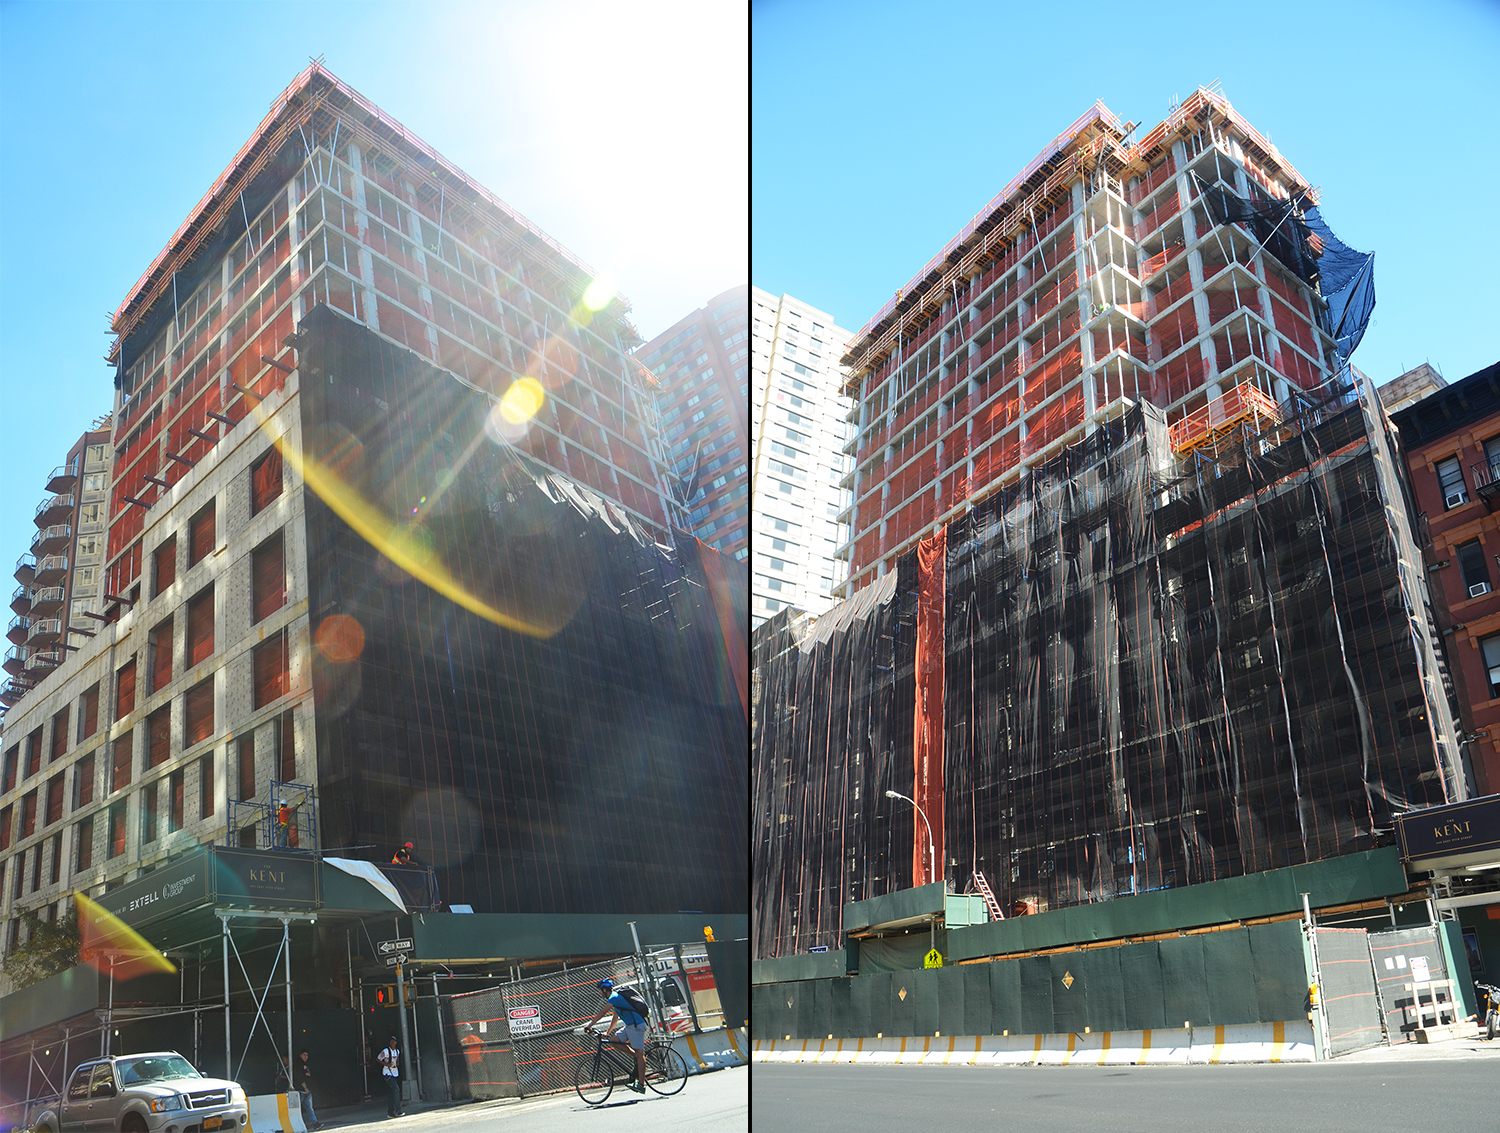 The Kent, at 200 East 95th Street. All photographs by the author